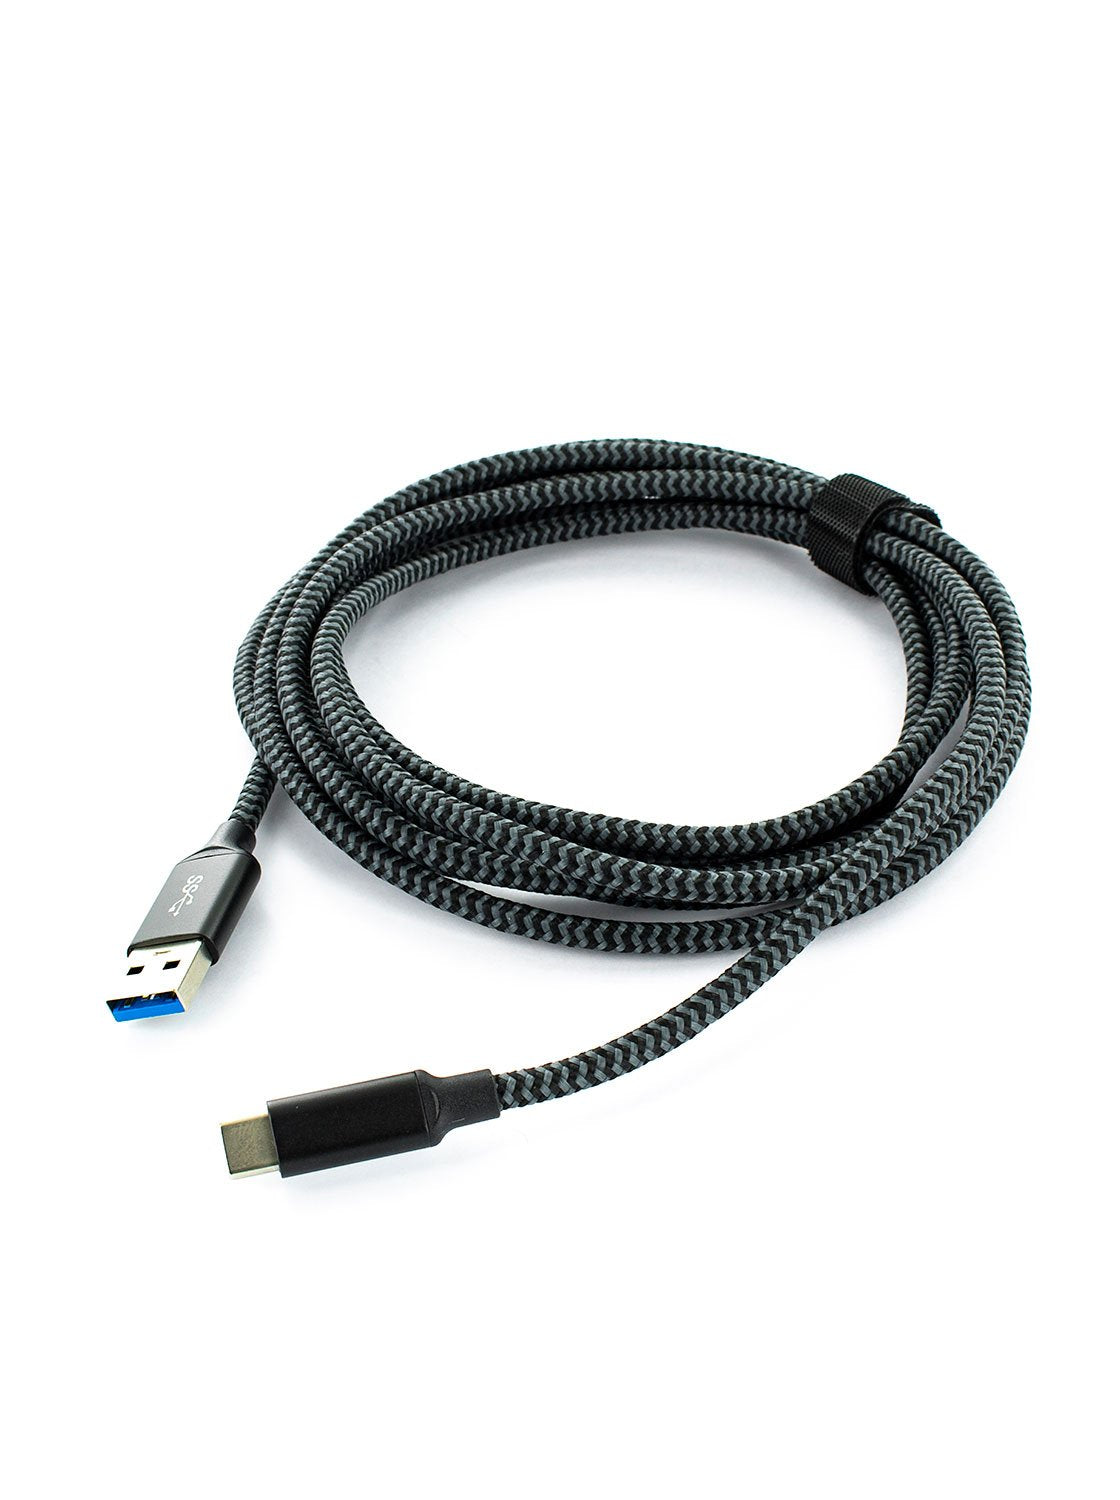 FLEX Braided 3 Meter USB-C Cable